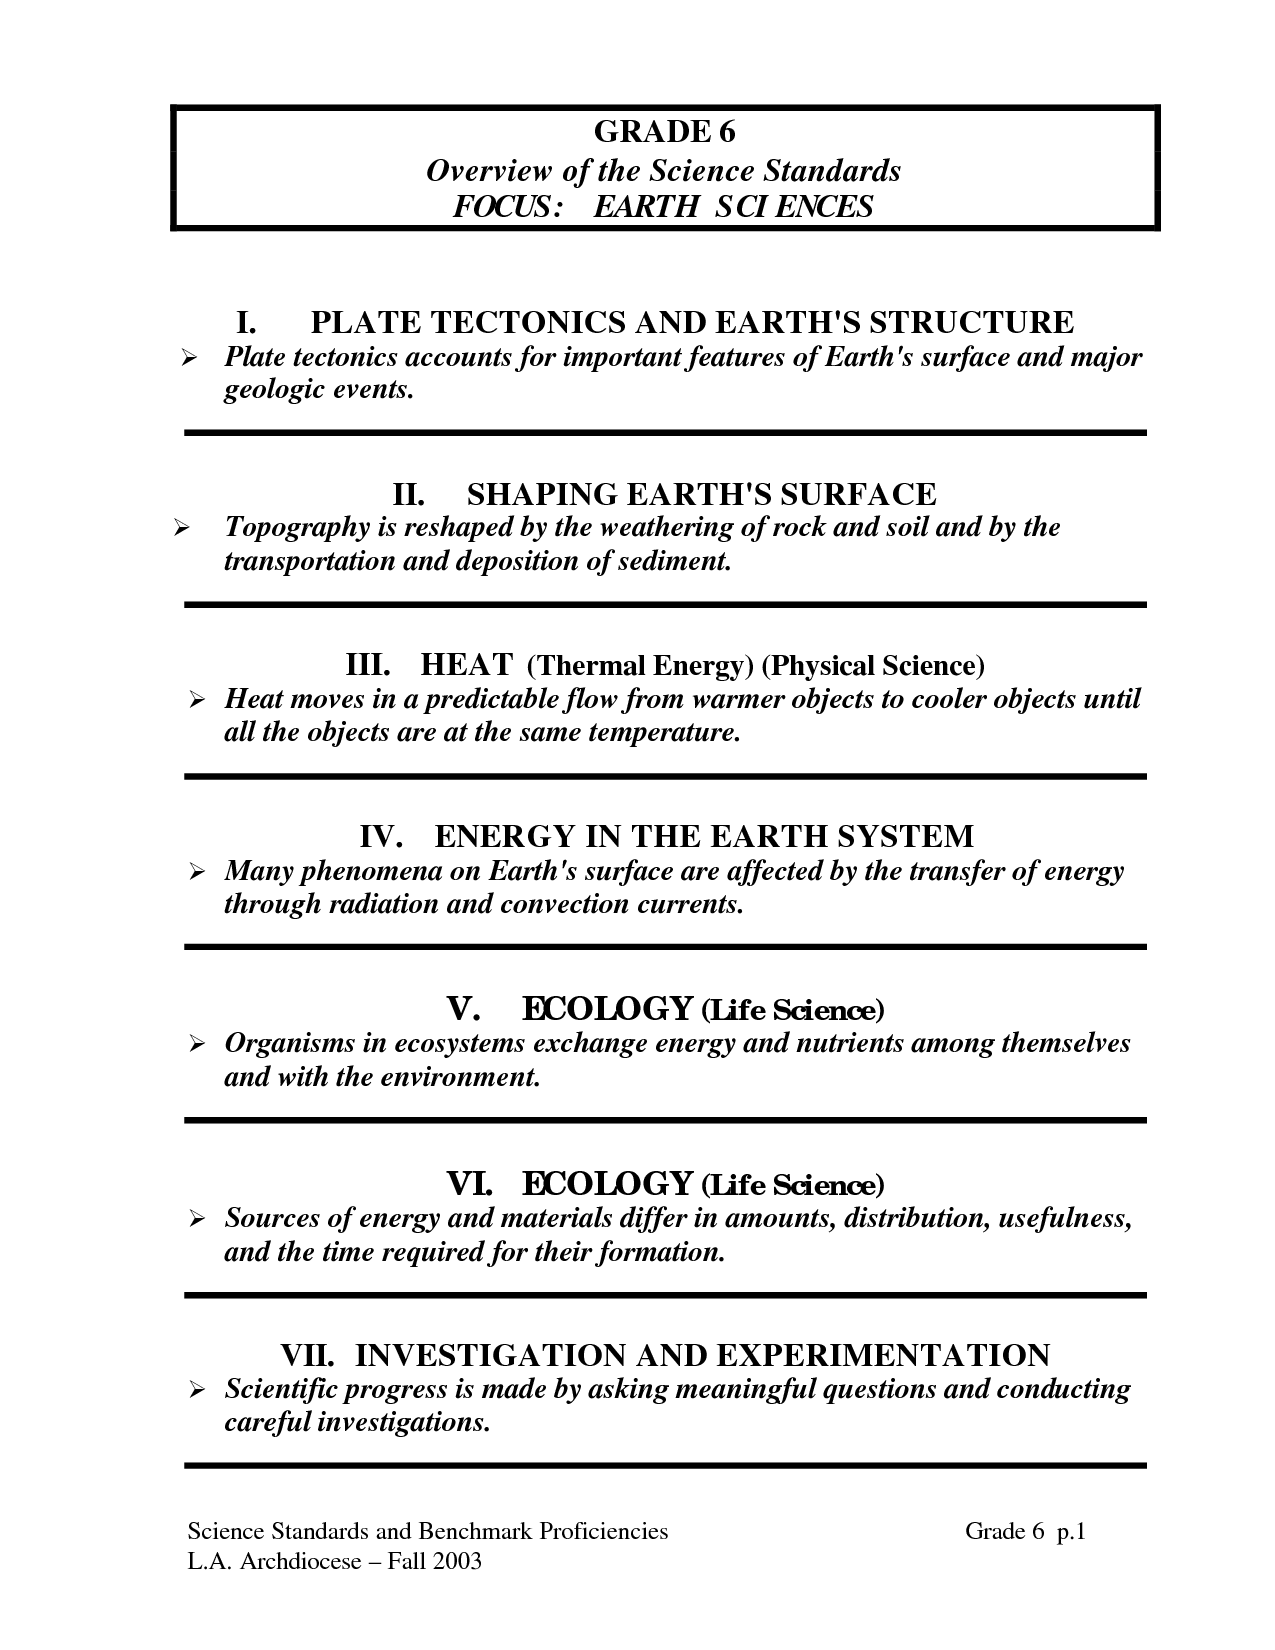 Blank Plate Tectonics Worksheet Printable